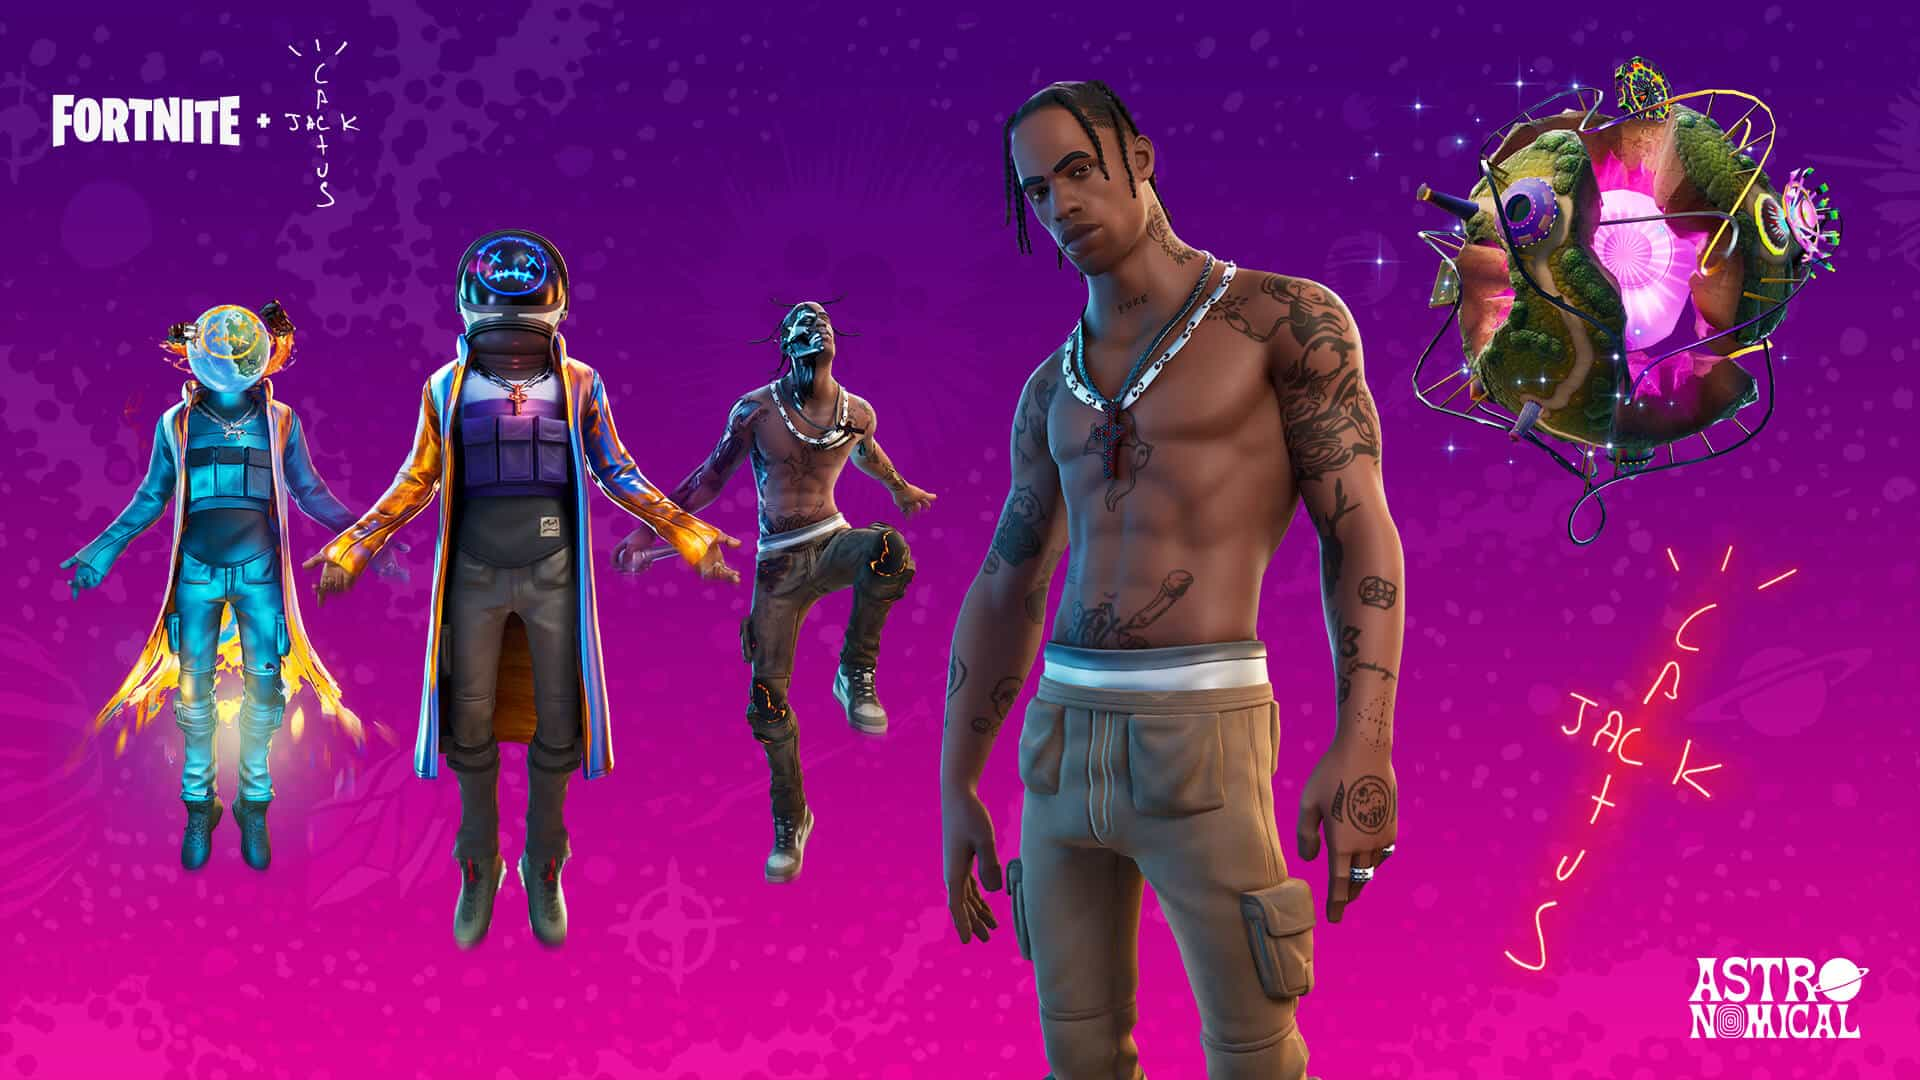 Fortnite_blog_astronomical_fortnite-astronomical